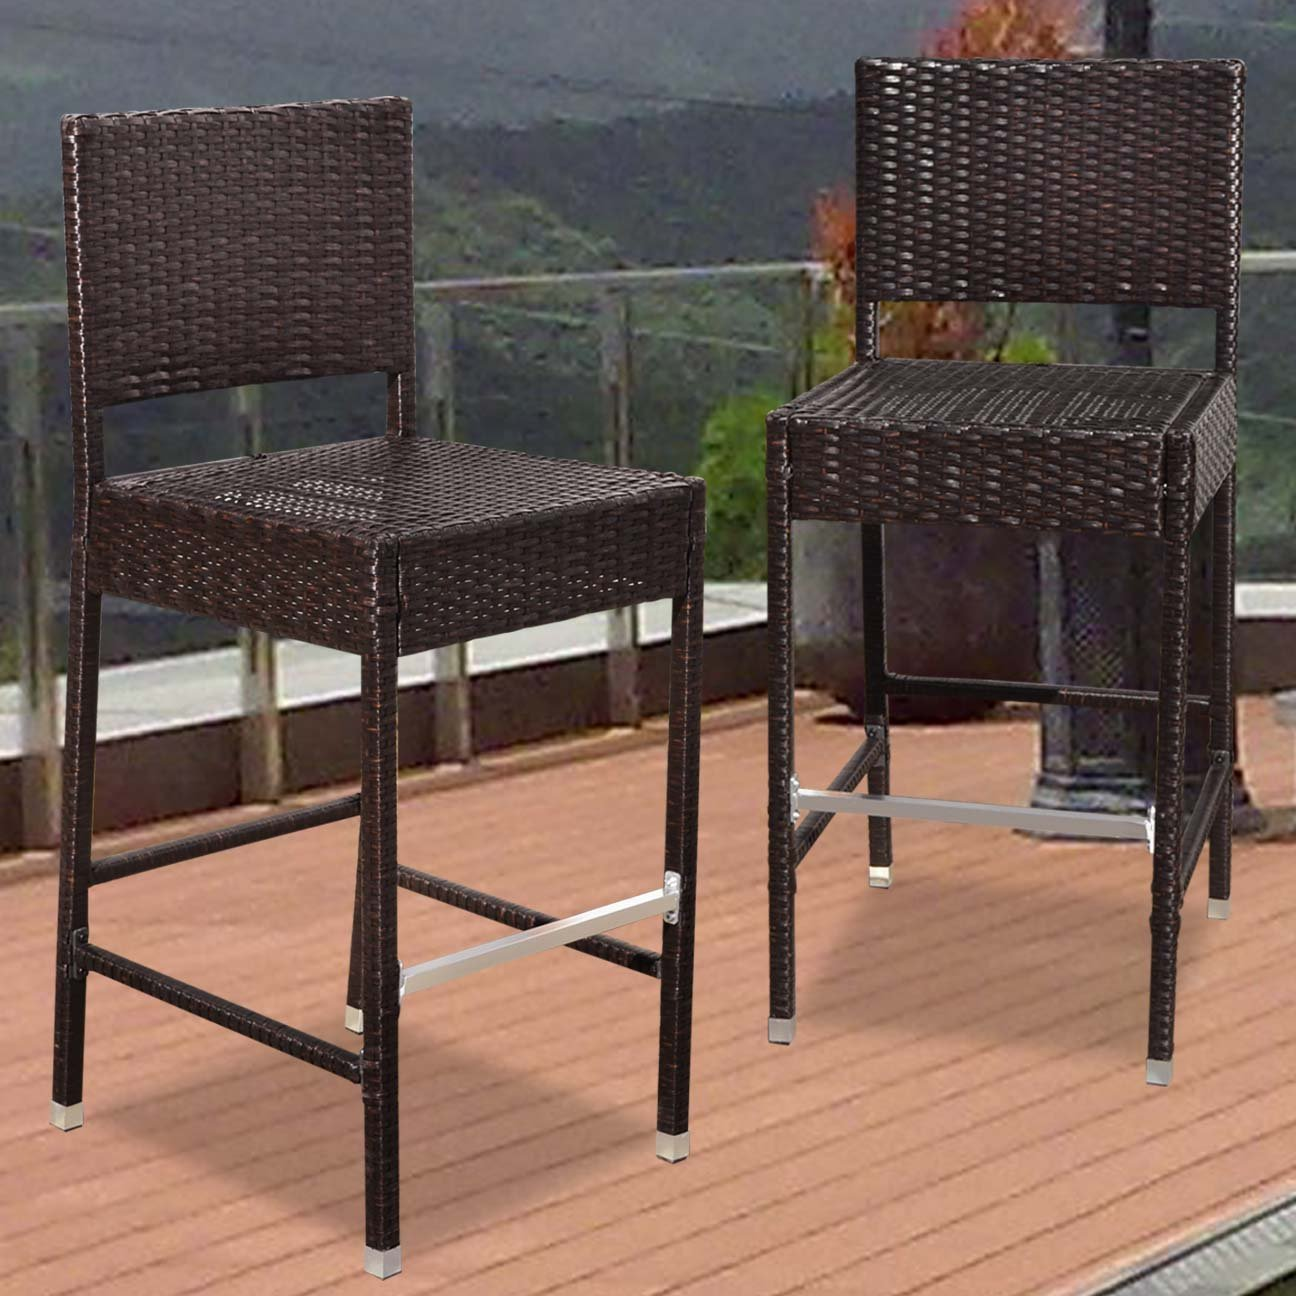 Strong Camel Dark Coffee Wicker Barstool Indoor Outdoor Patio Furniture All Weather Bar Stool--2 pcs